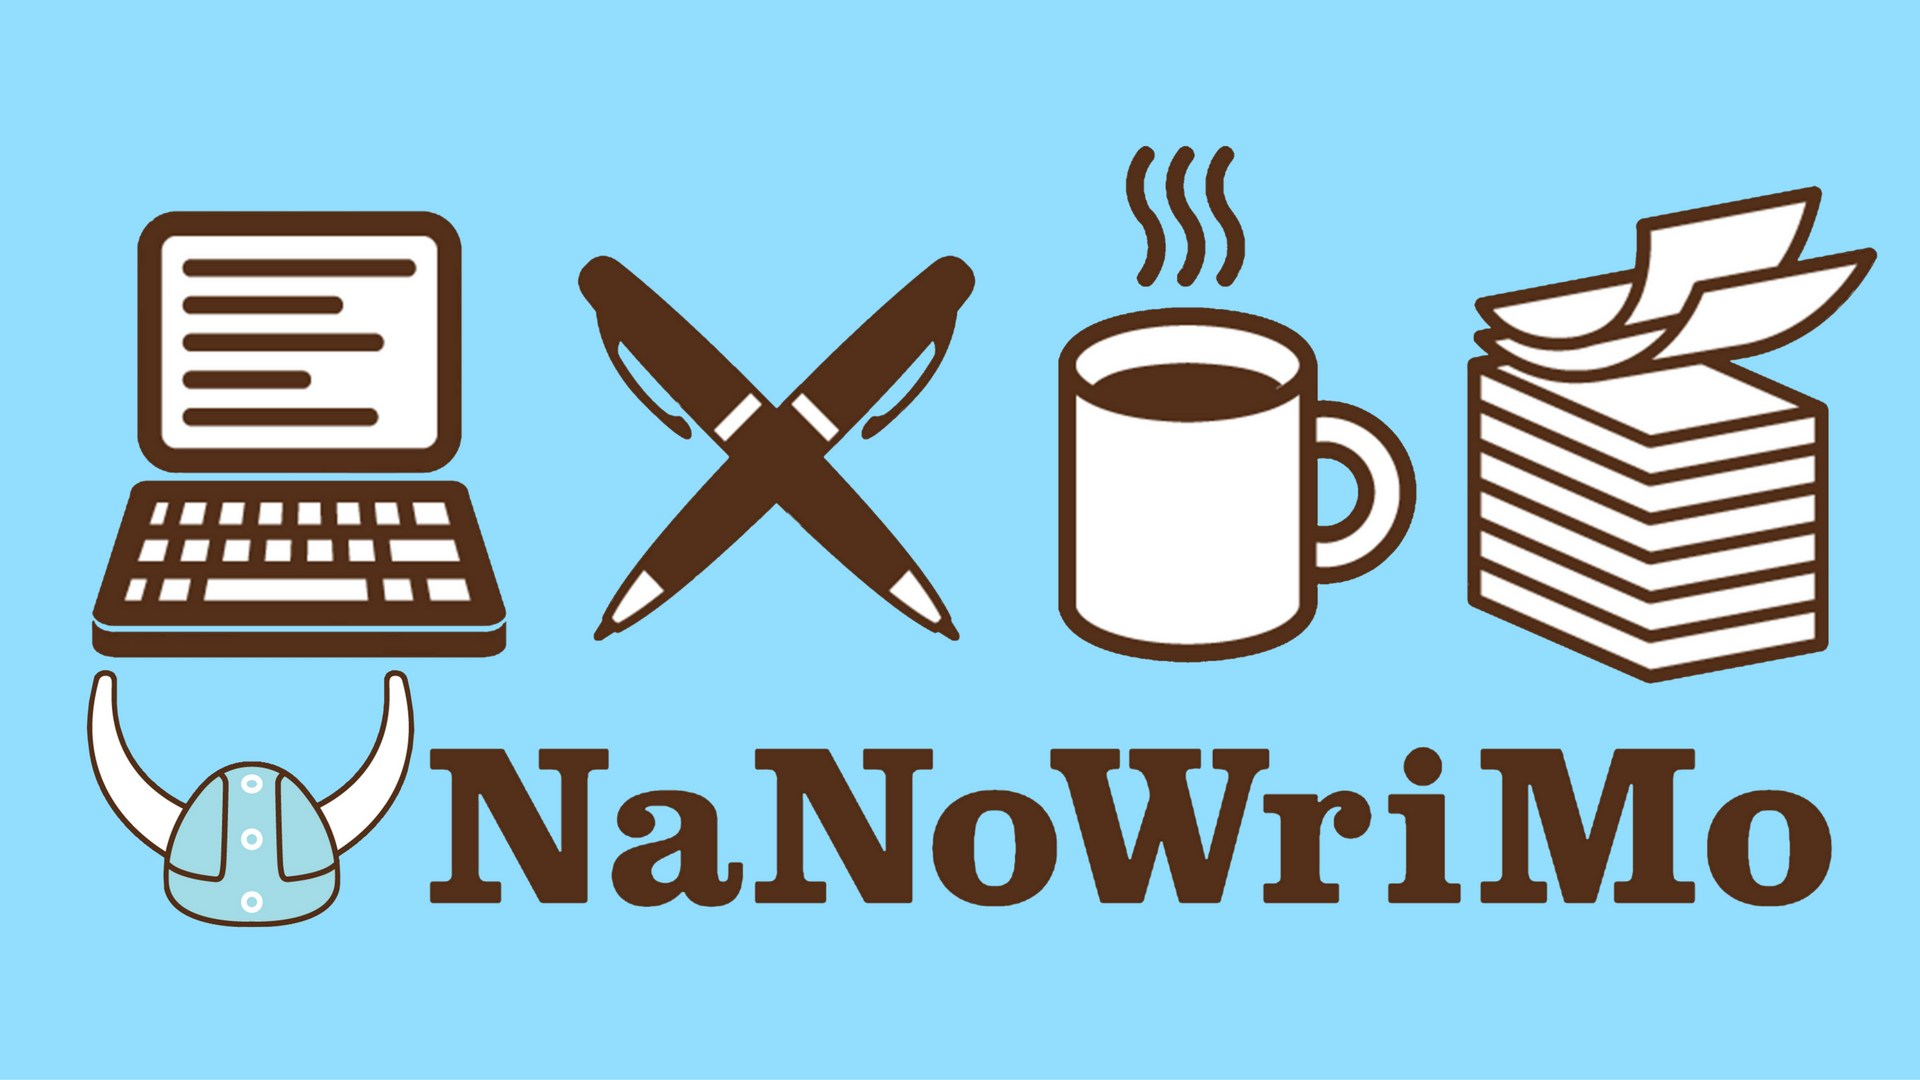 NaNoWriMo – Lucy A. Snyder